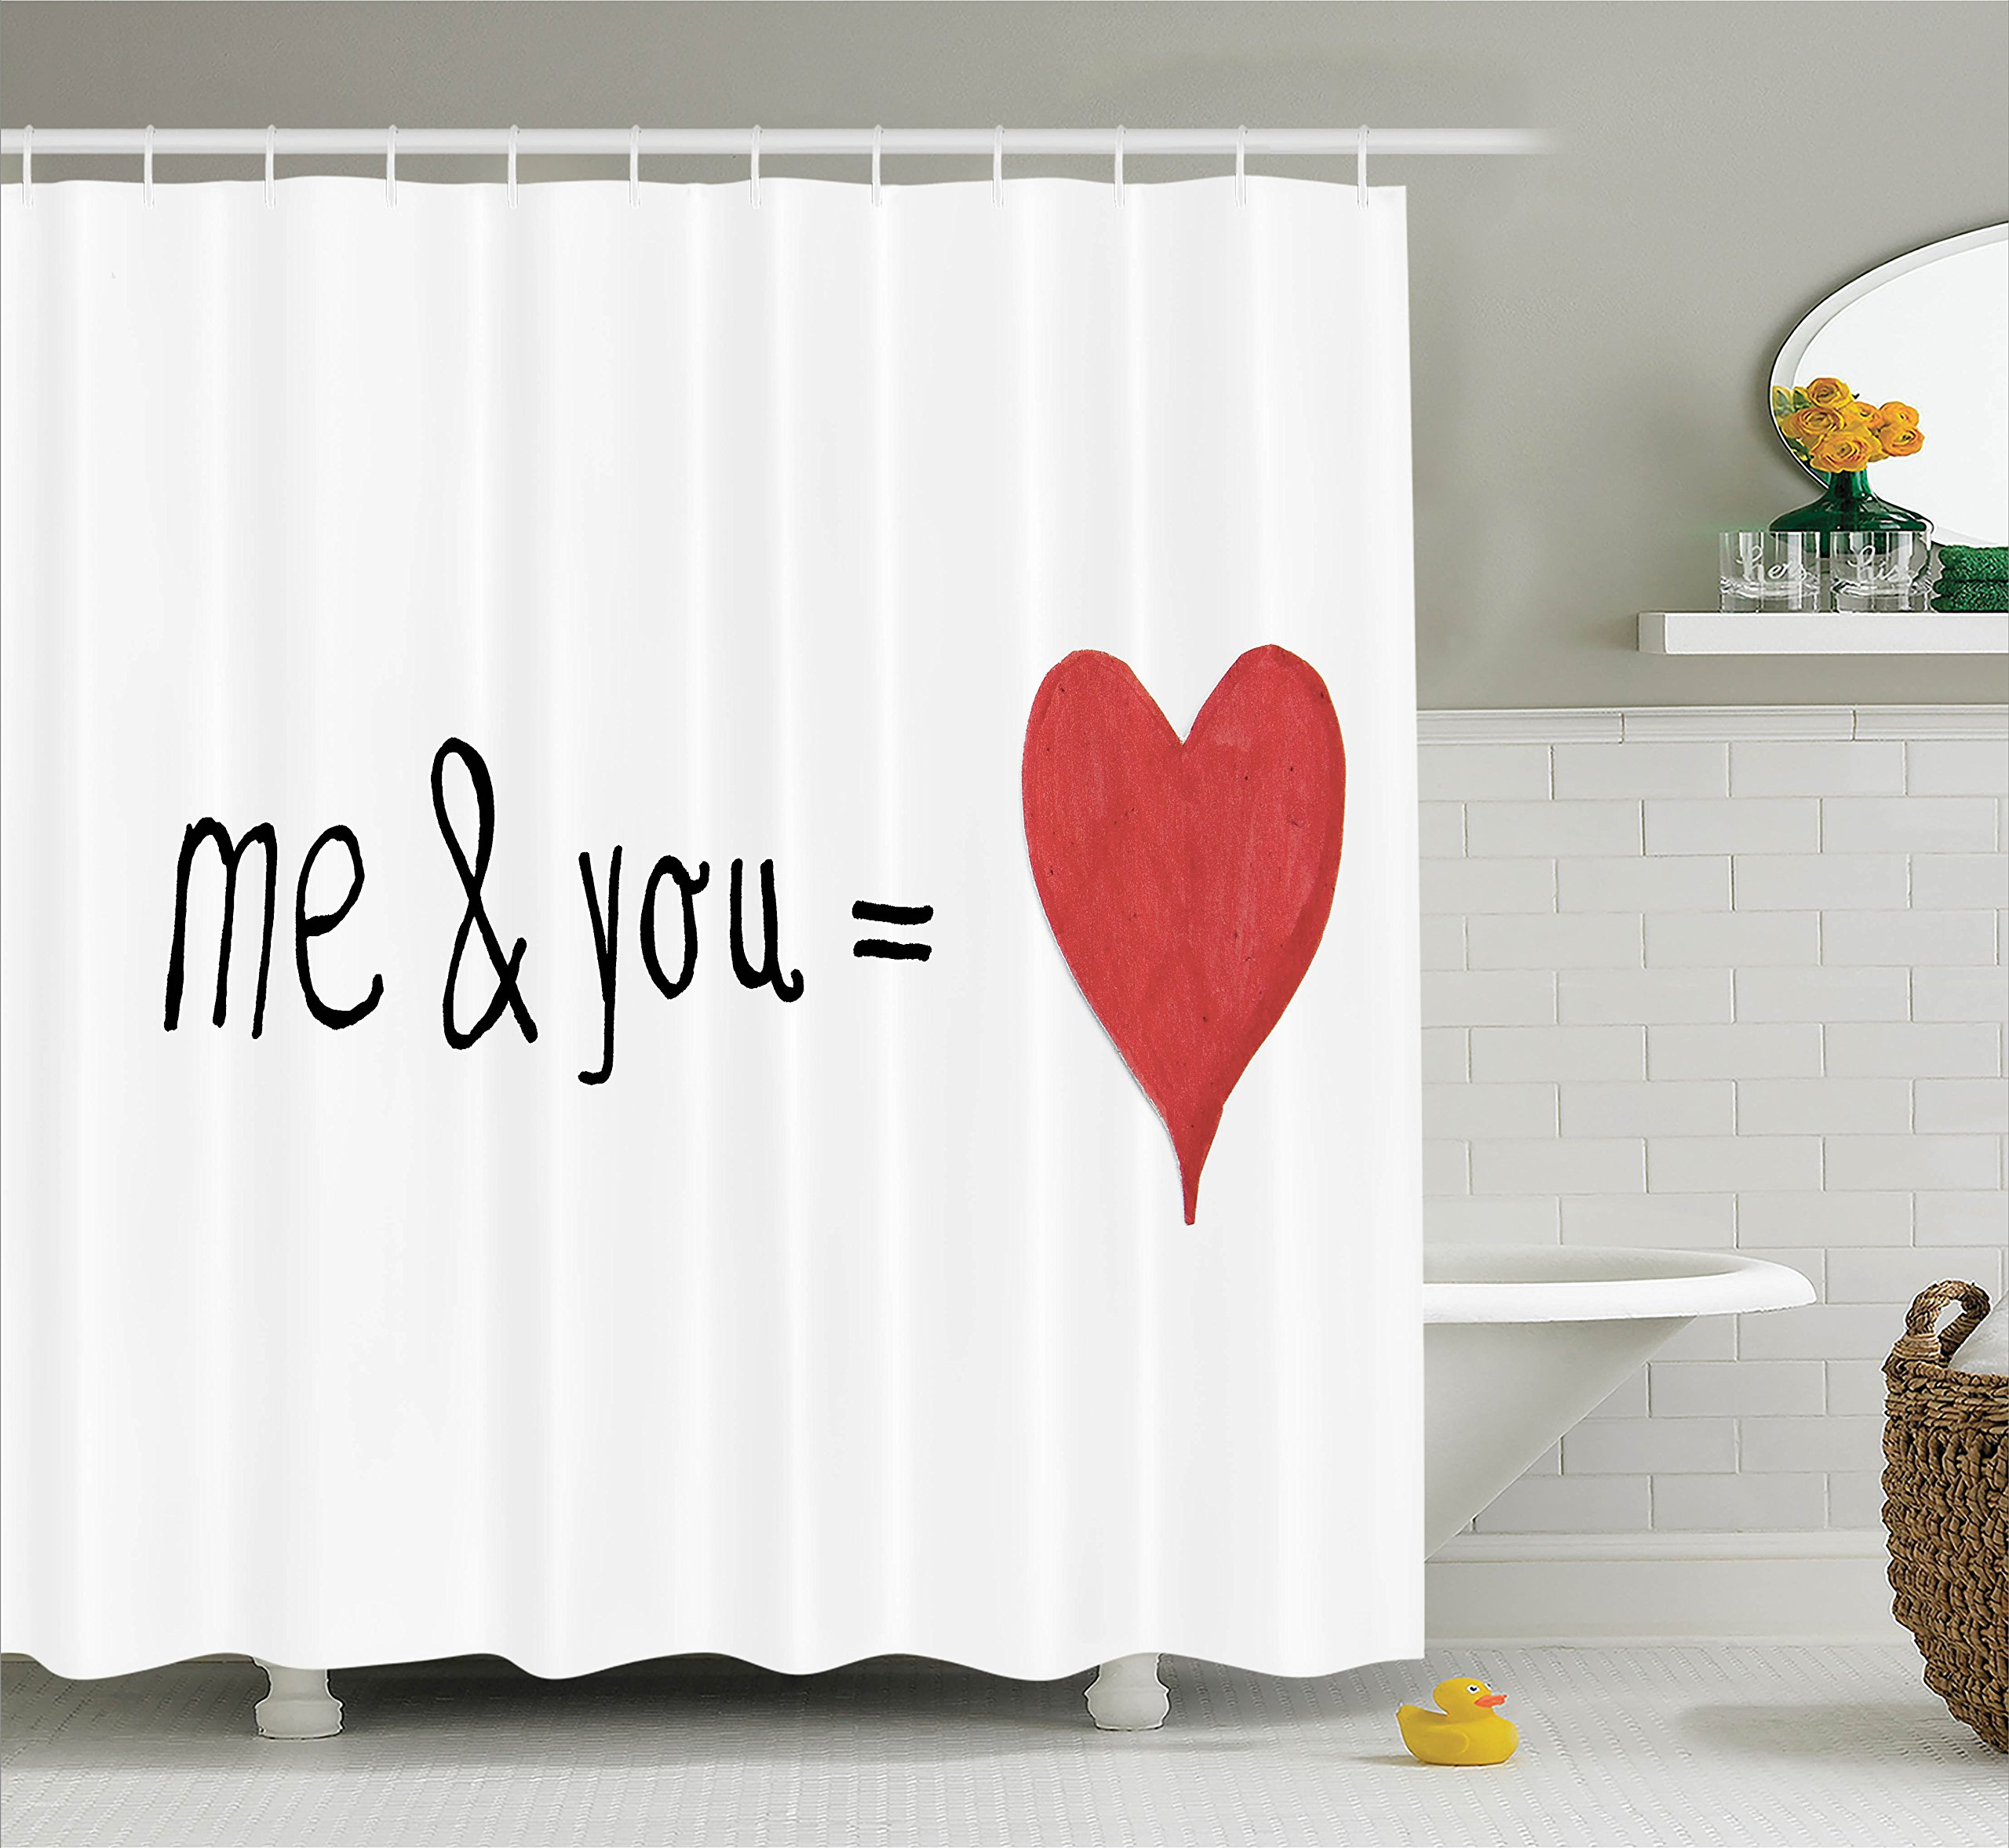 Ambesonne Love Decor Shower Curtain Set, Me and You Equal to Us Everything My World Relationship Eros Valentines Print, Bathroom Accessories, 75 inches Long, Red Black White